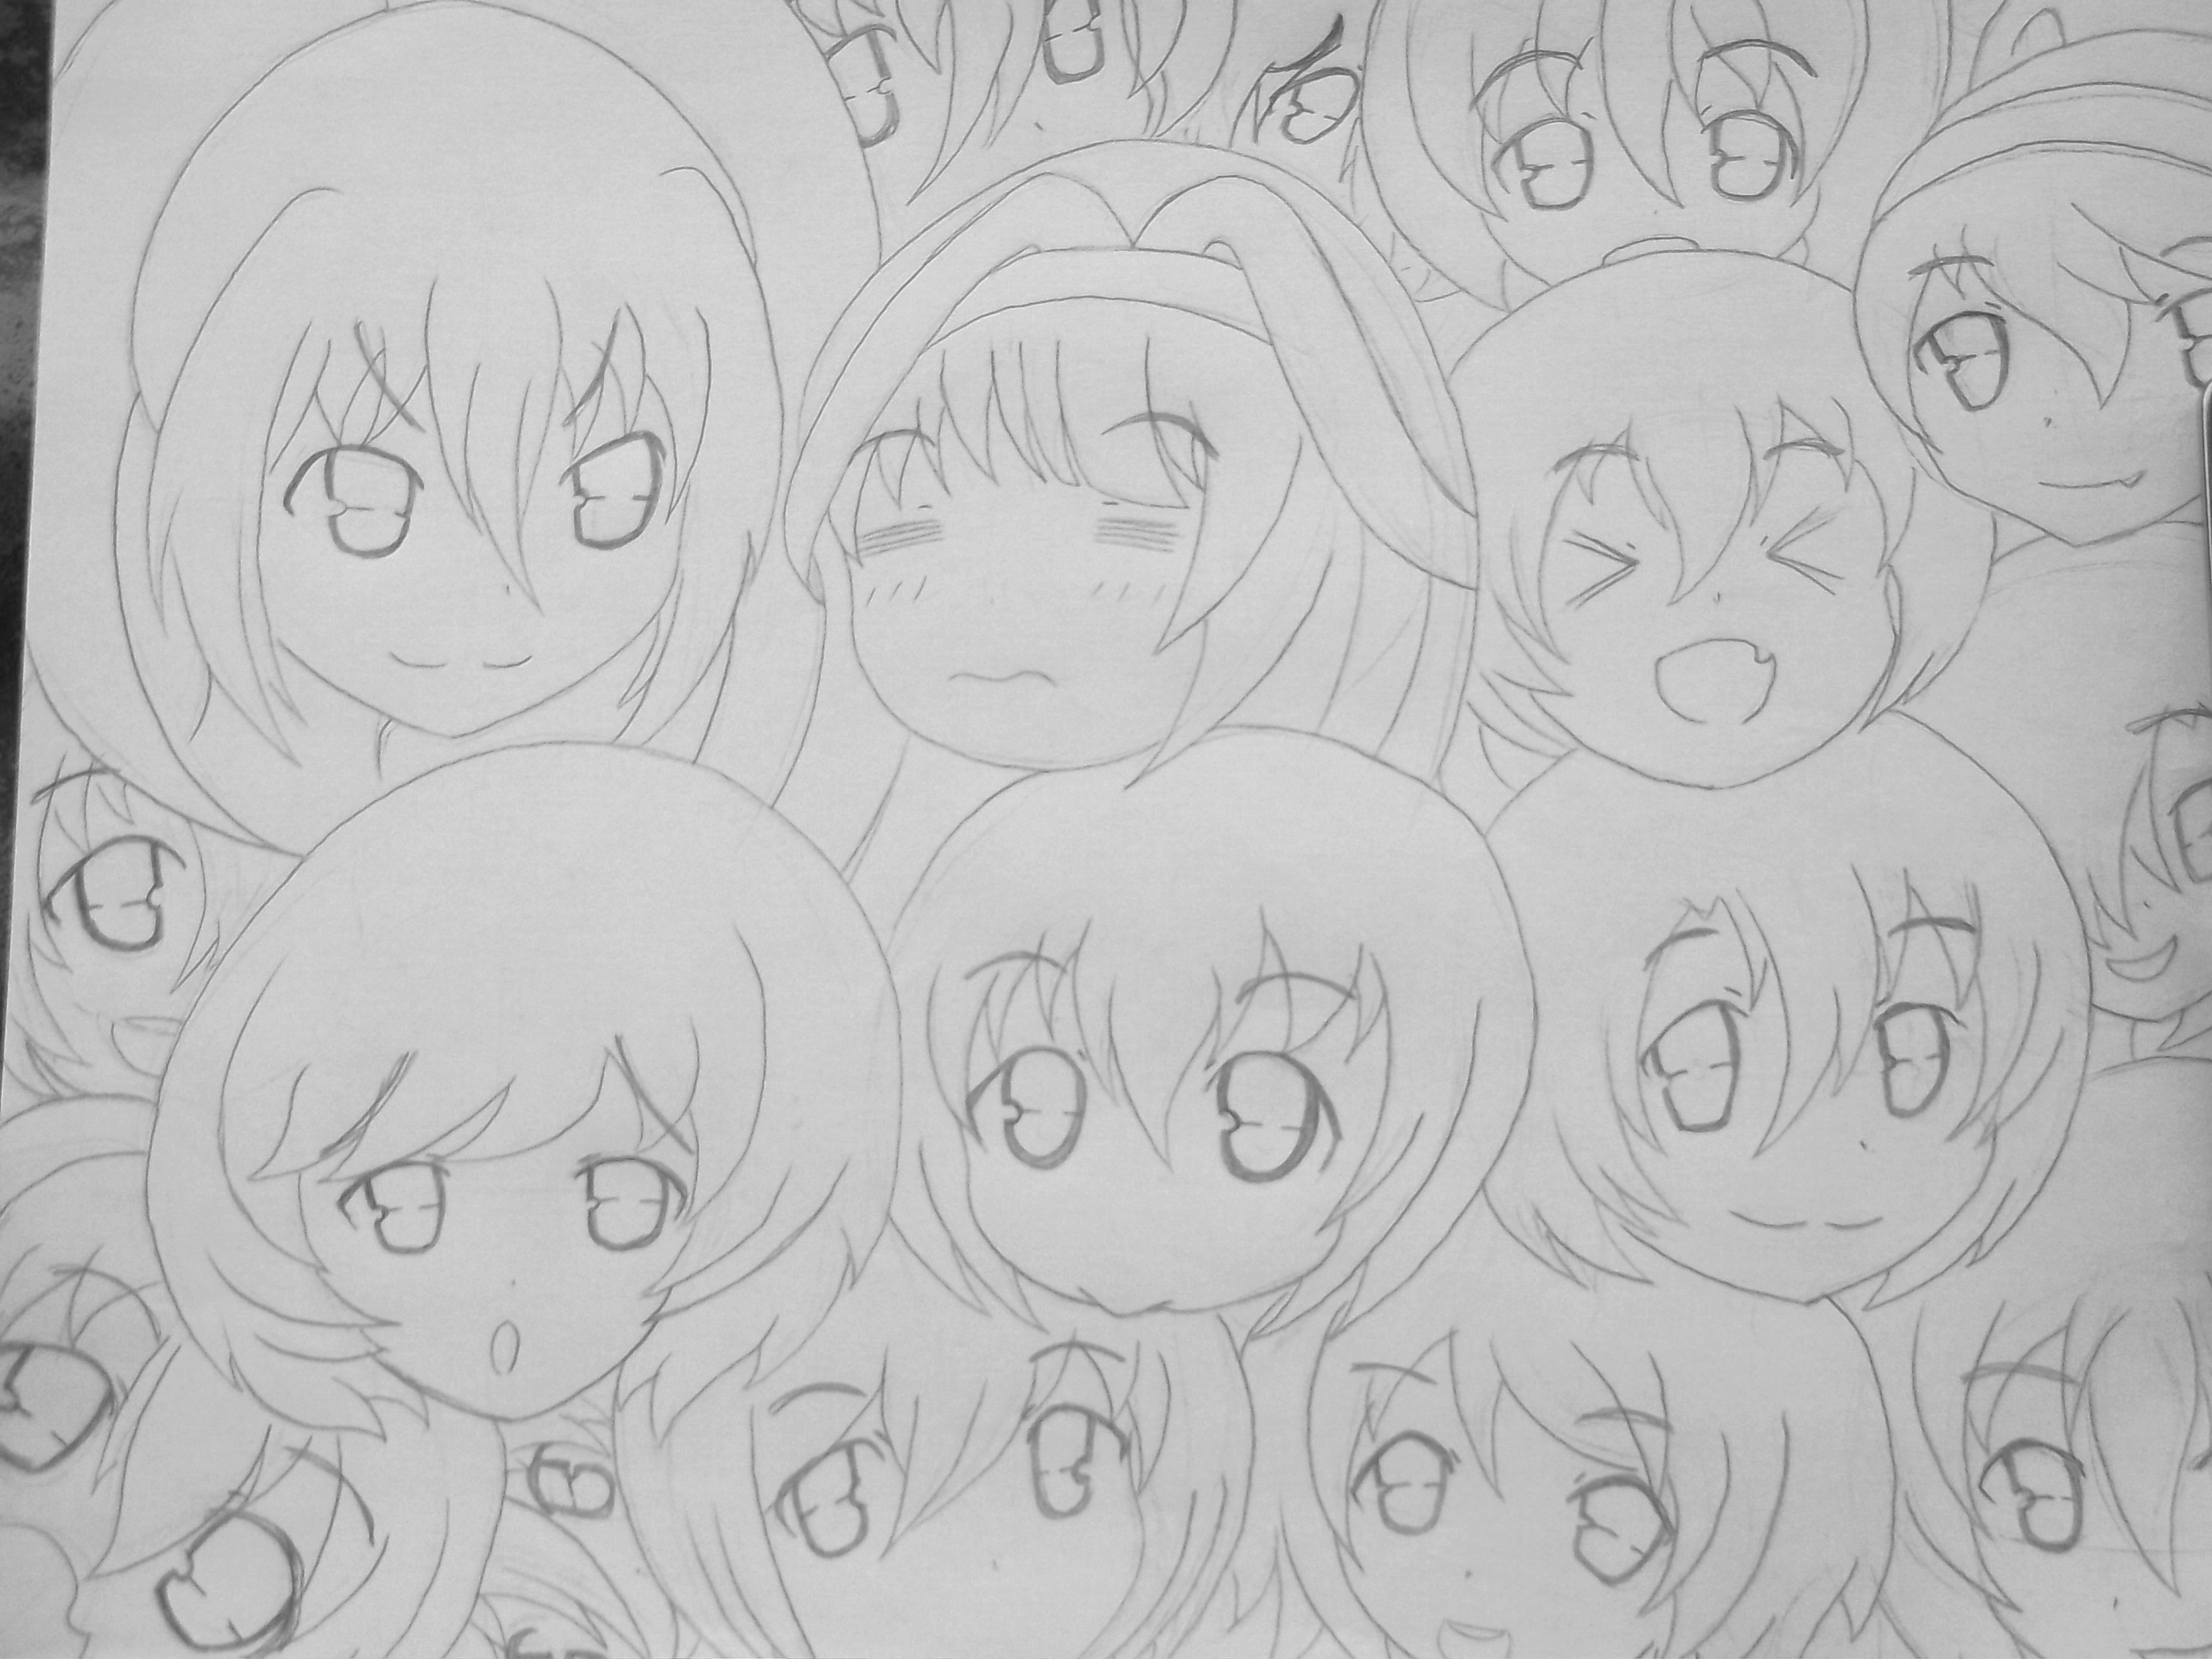 Face Overload 07